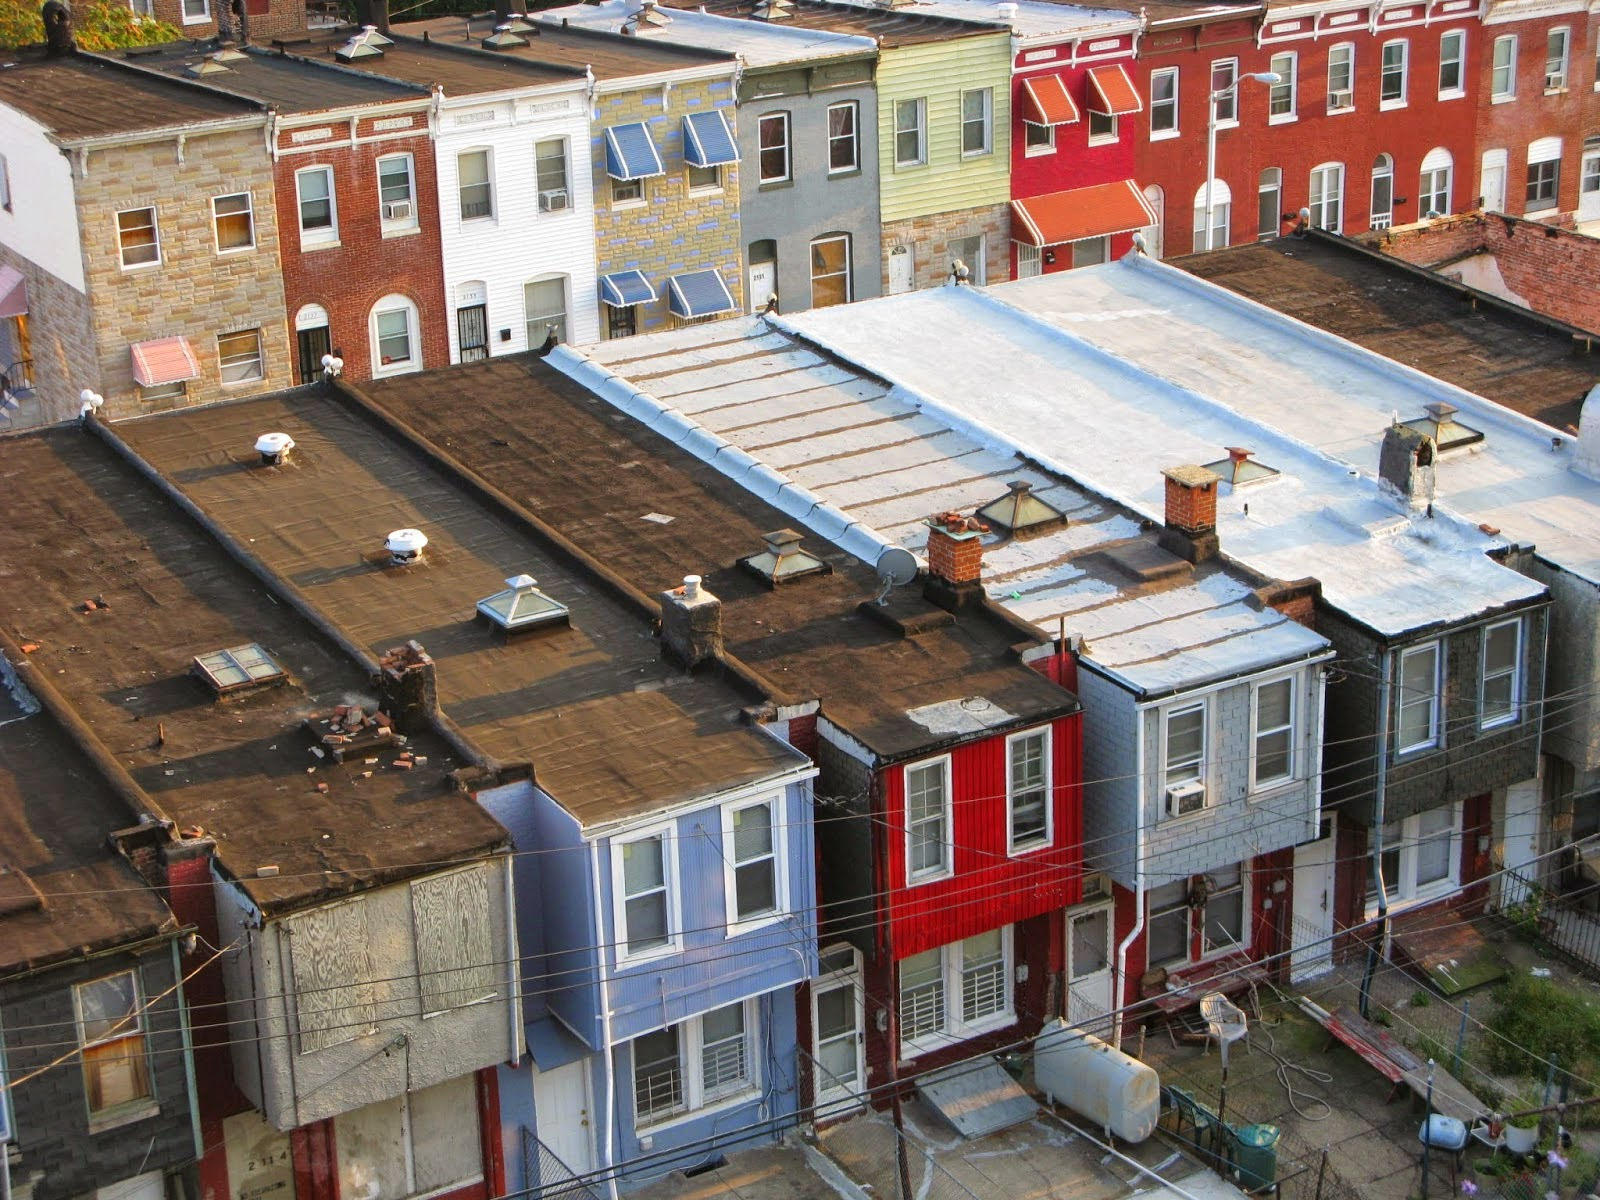 ratio juris building blocks of segregation deprivation in baltimore to segregate and impoverish its black population in his essay from ferguson to baltimore the fruits of government sponsored segregation